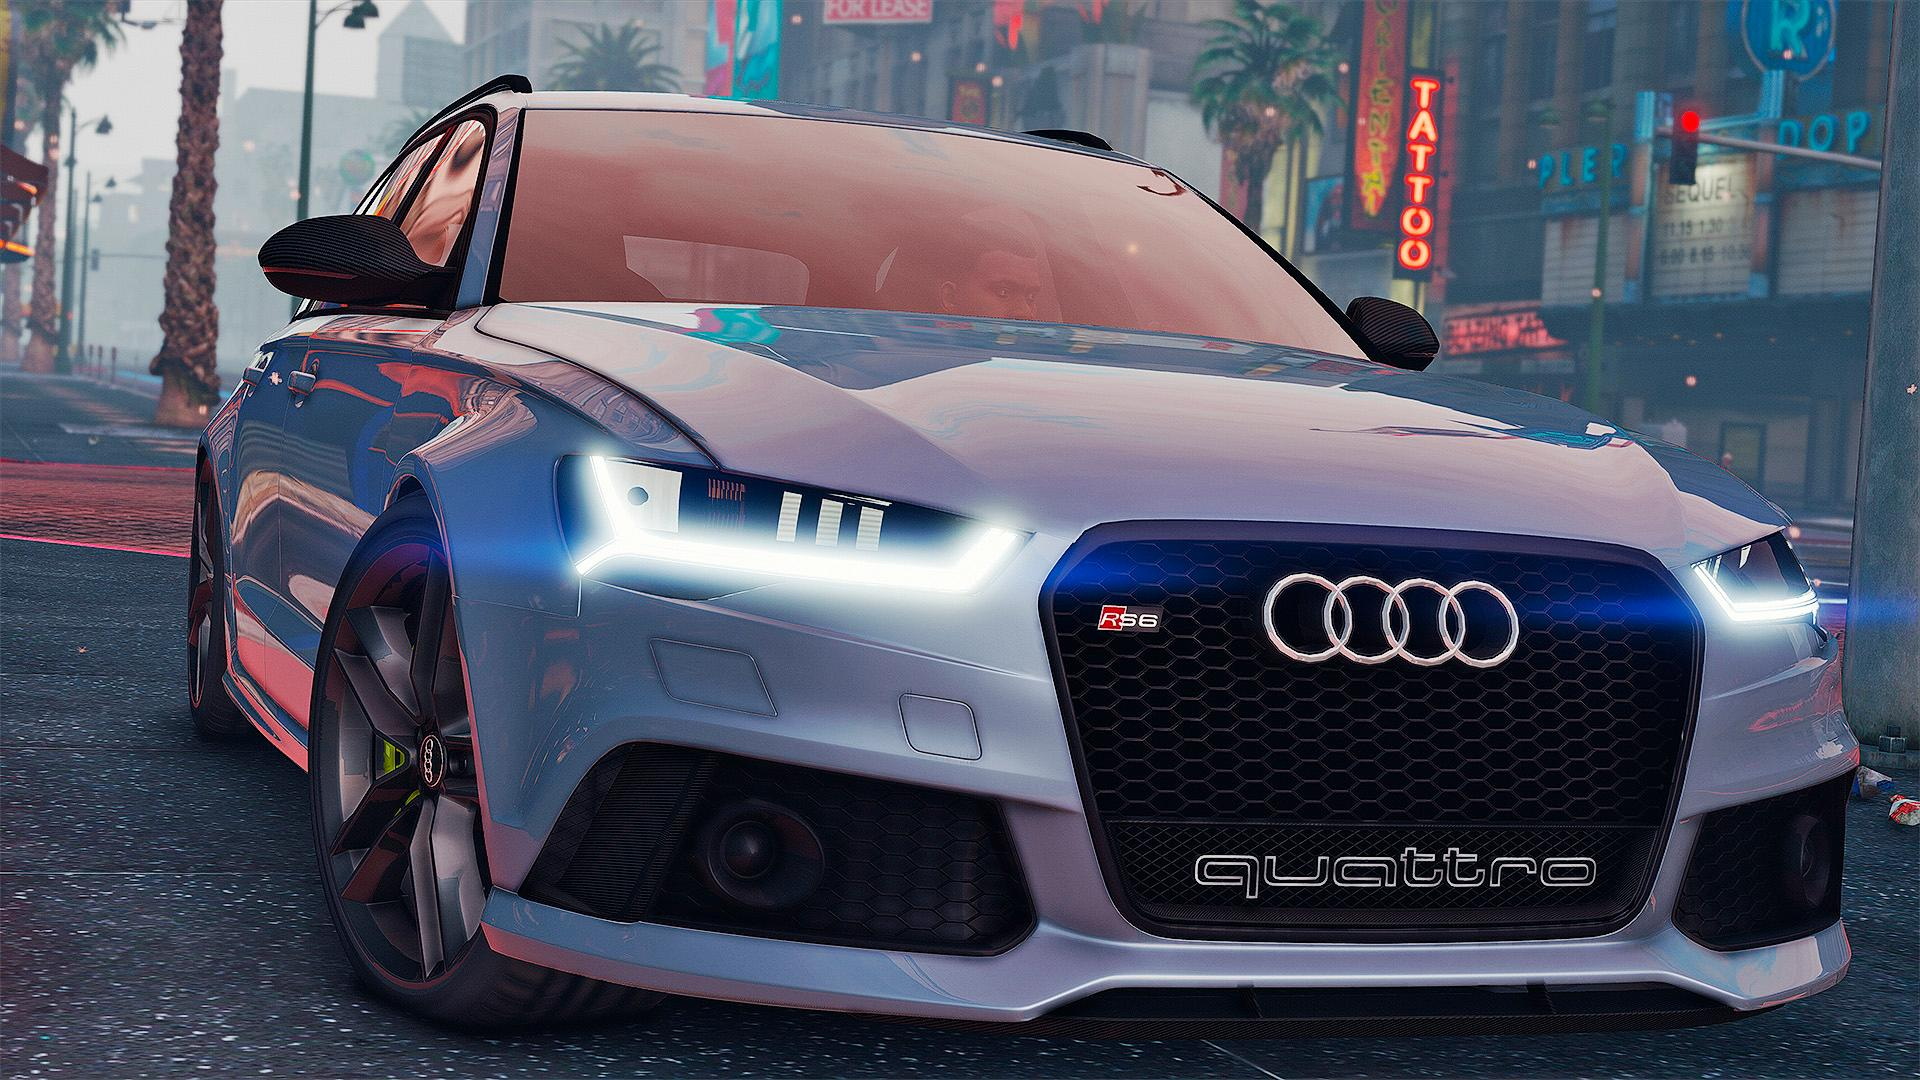 2015 Audi Rs6 C7 Avant Add On Tuning Hq Gta5 Mods Com